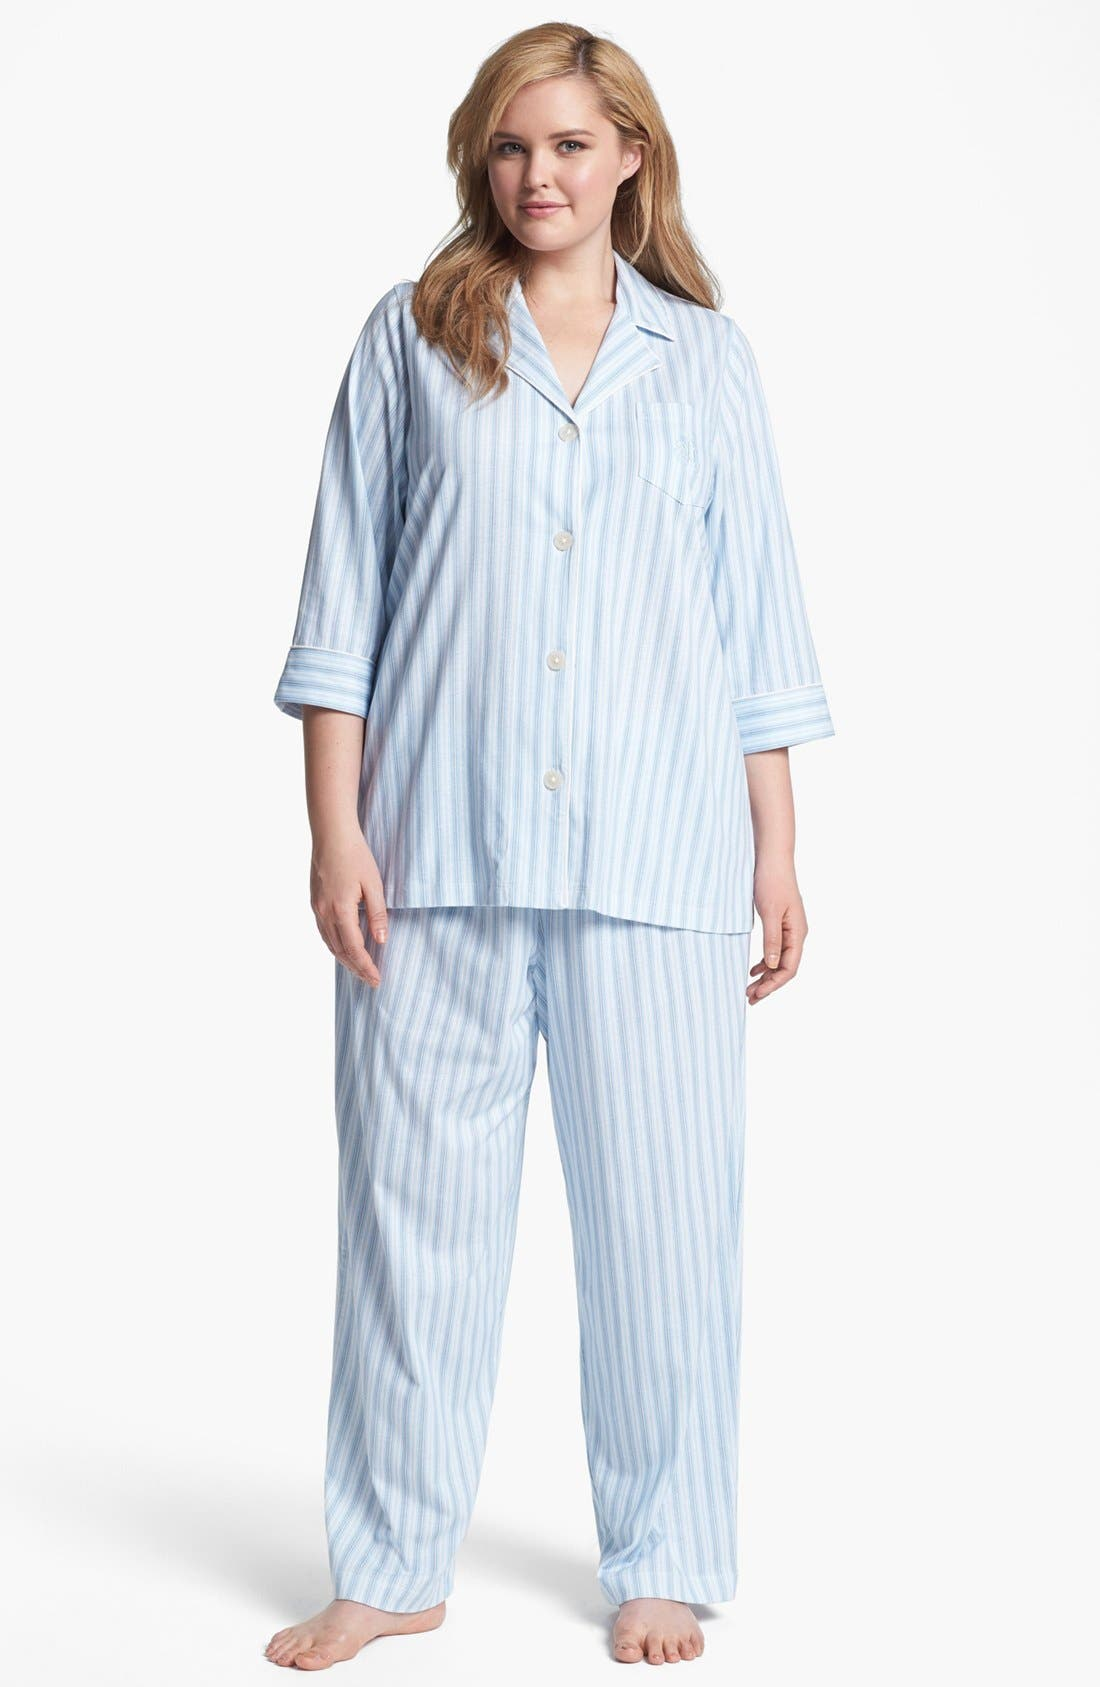 Alternate Image 1 Selected - Lauren Ralph Lauren Stripe Knit Pajamas (Plus Size)